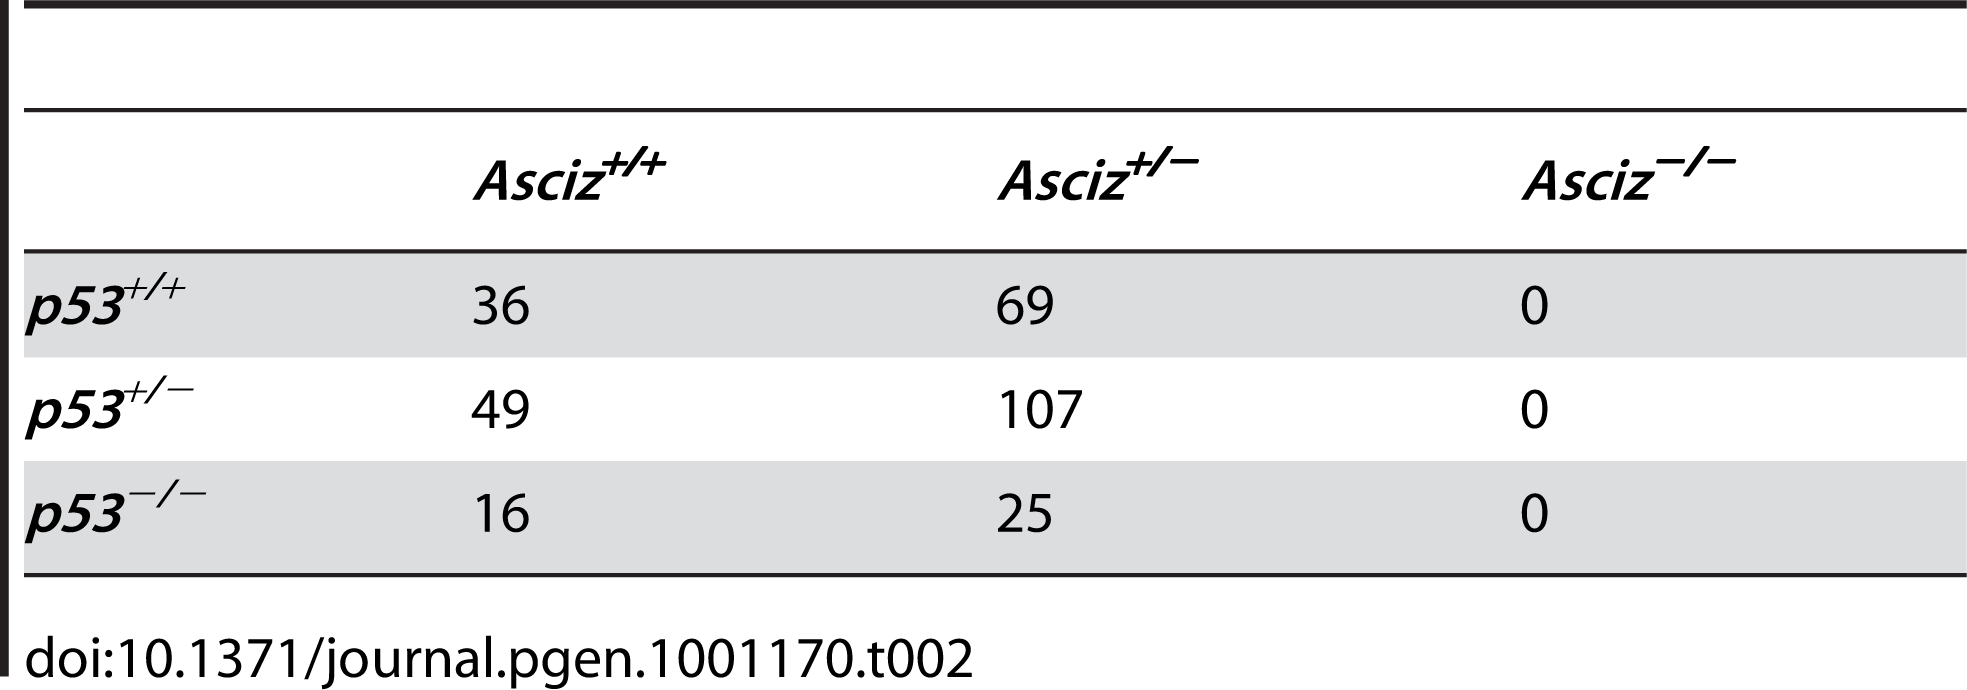 Genotypes of offspring from <i>Asciz<sup>+/−</sup> p53<sup>+/−</sup></i> intercrosses at weaning.